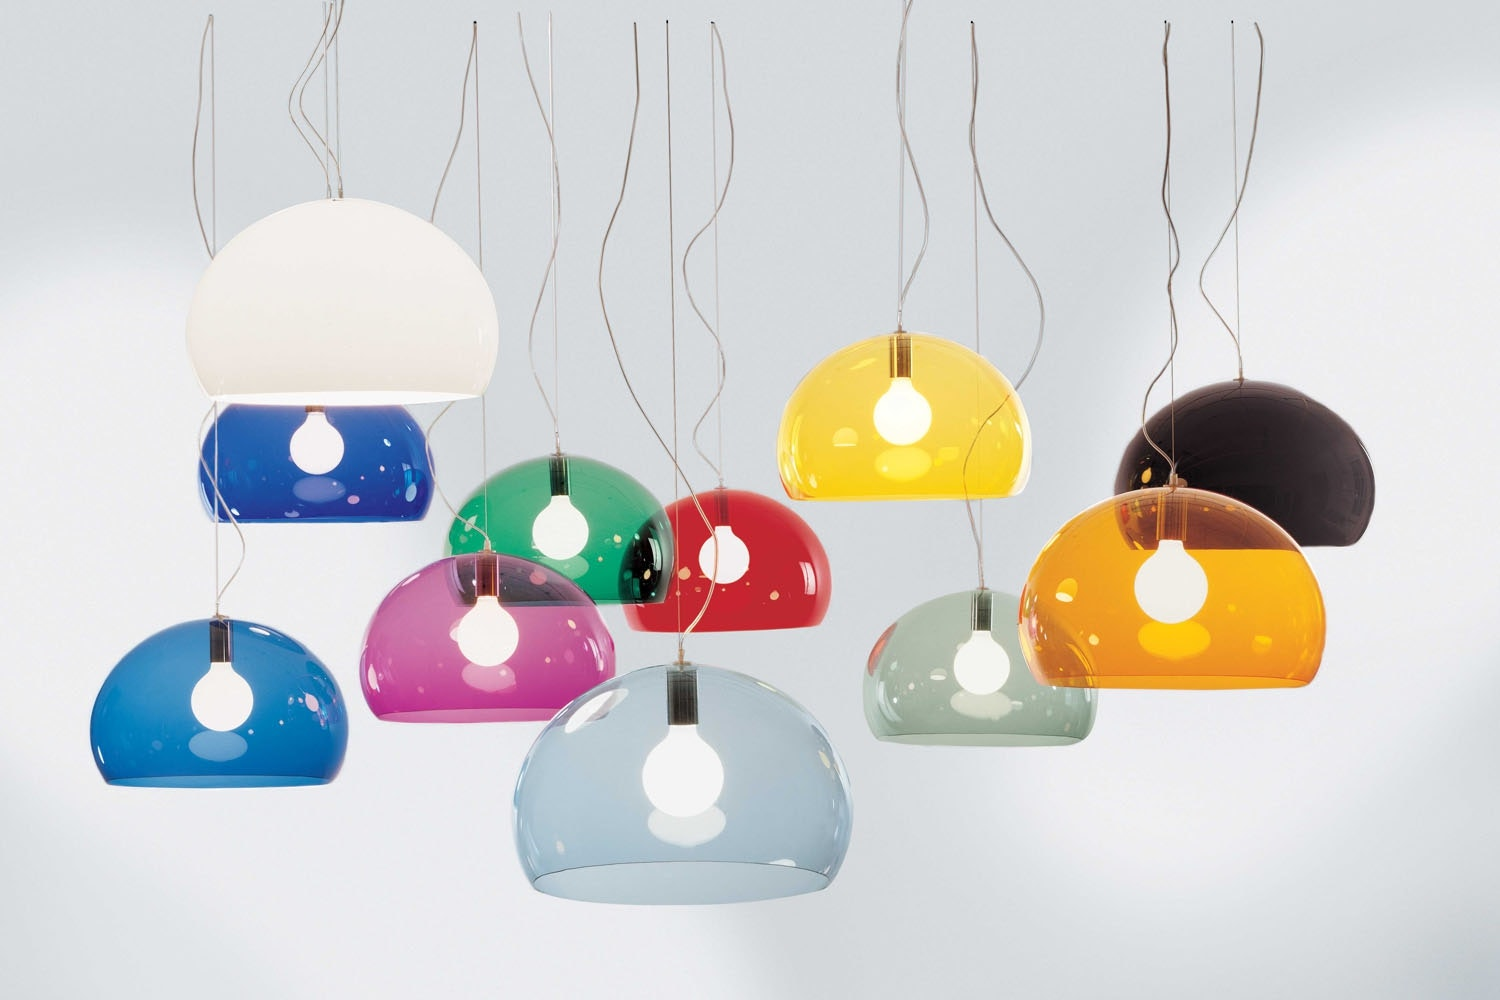 FL/Y Suspension Lamp by Ferruccio Laviani for Kartell